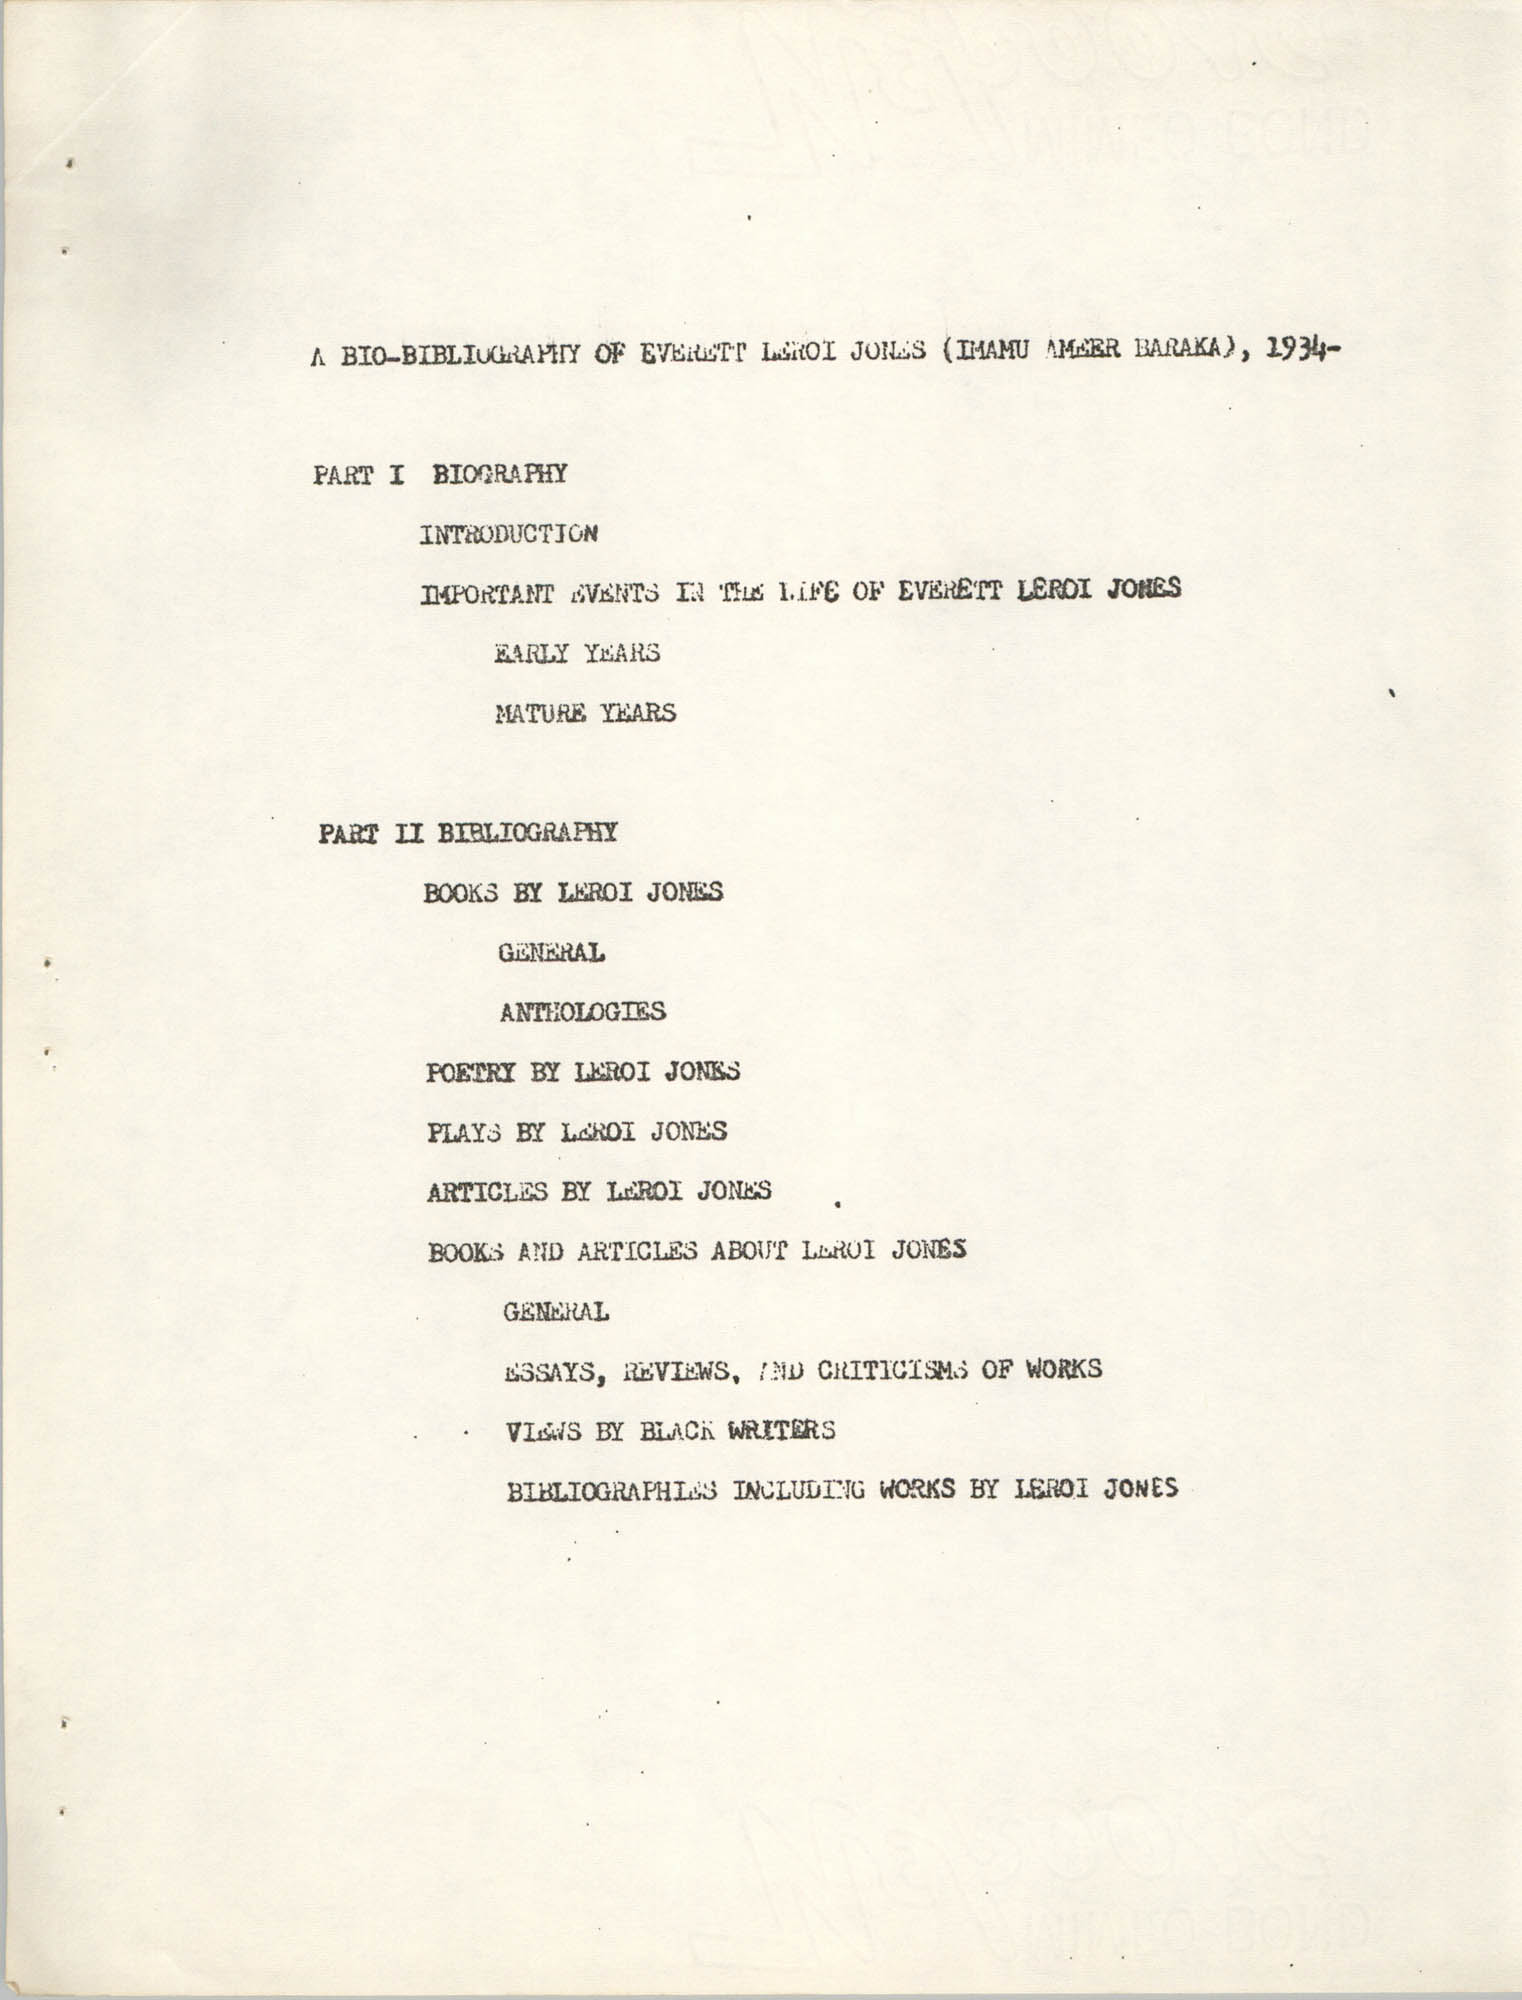 Center for African and African-American Studies Bibliography No. 2, Page 1